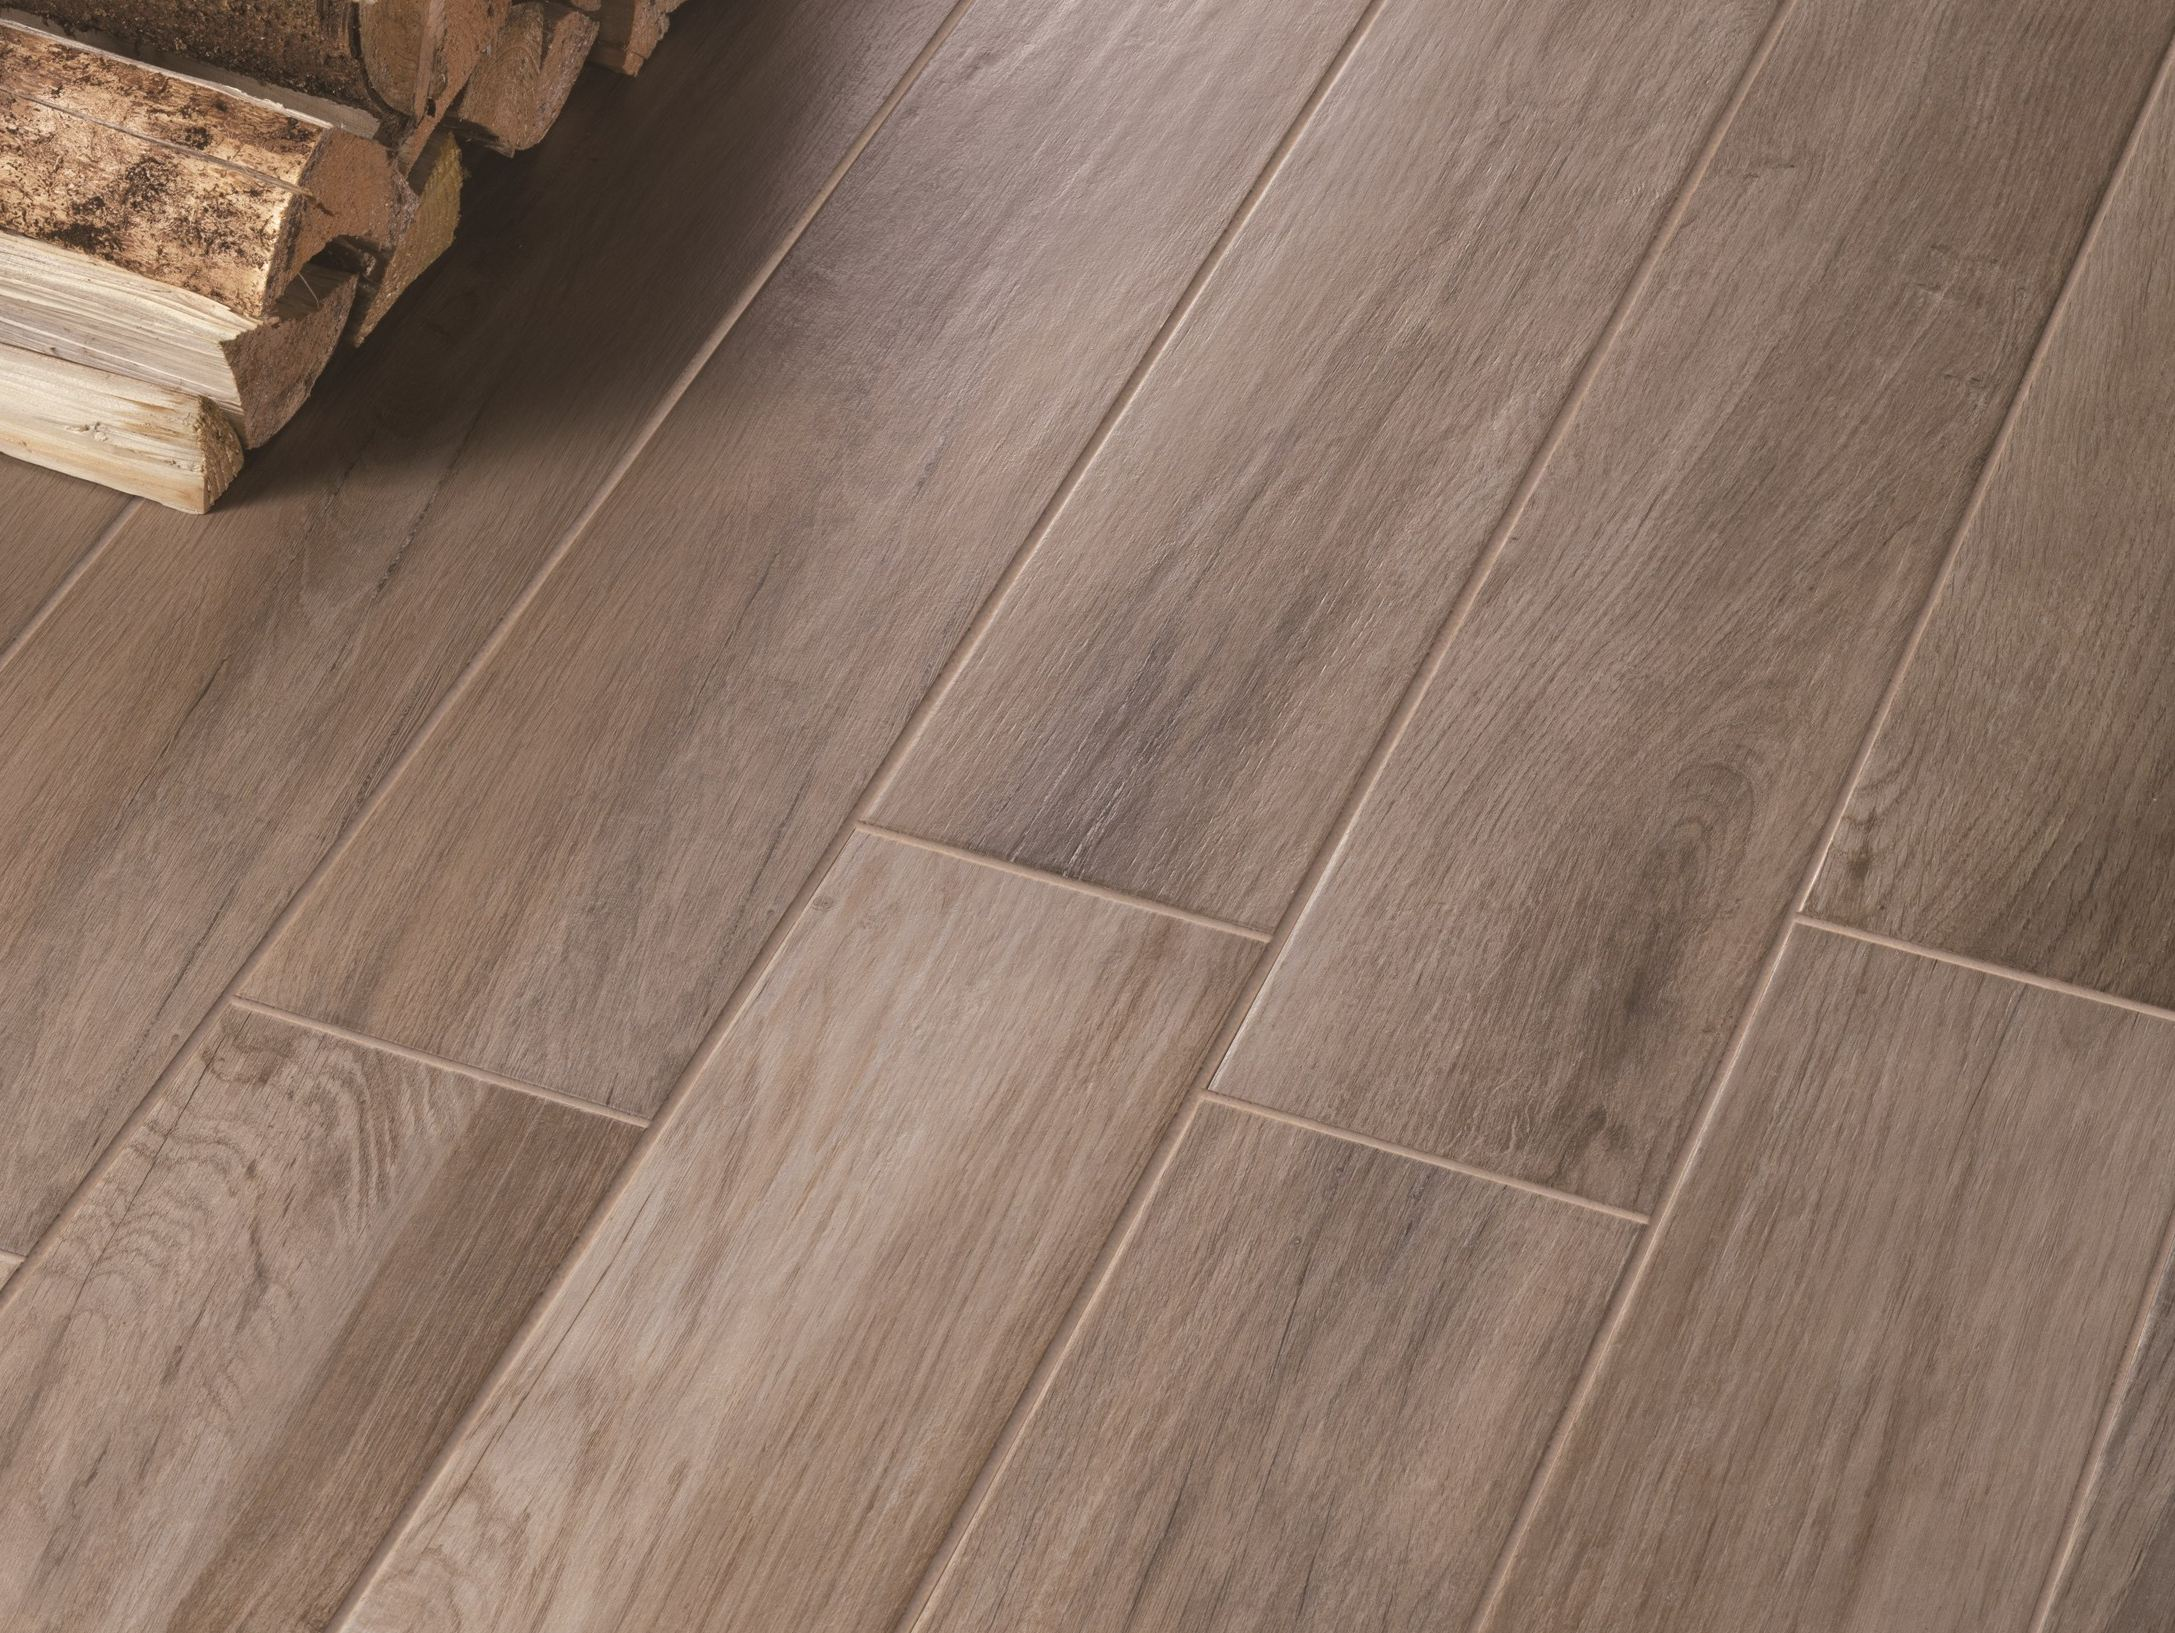 Glazed stoneware flooring with wood effect treverkmood by Marazzi tile